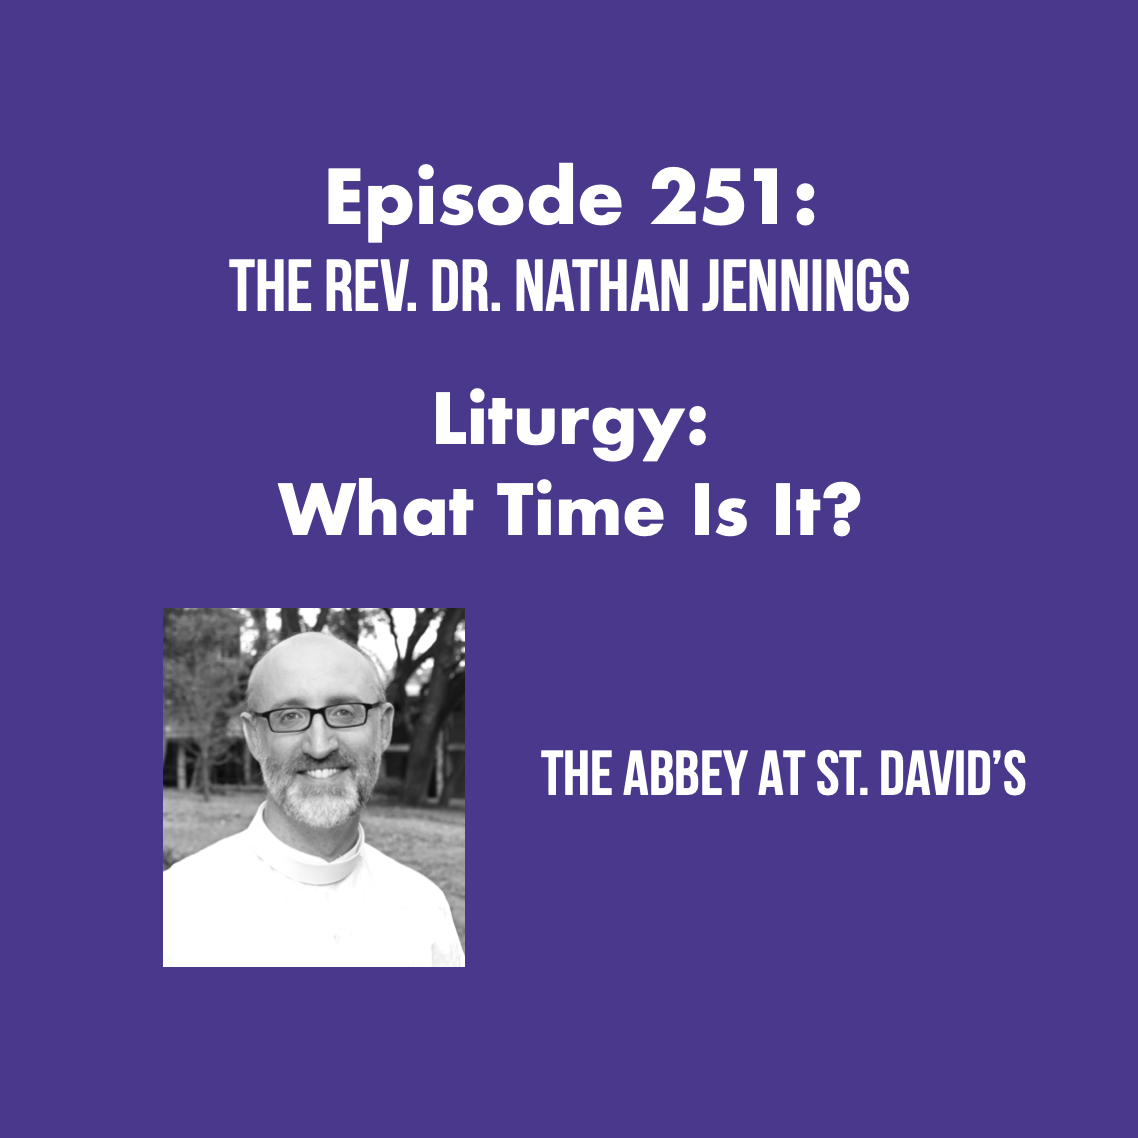 Episode 251: Liturgy: What Time Is It? with The Rev. Dr. Nathan Jennings